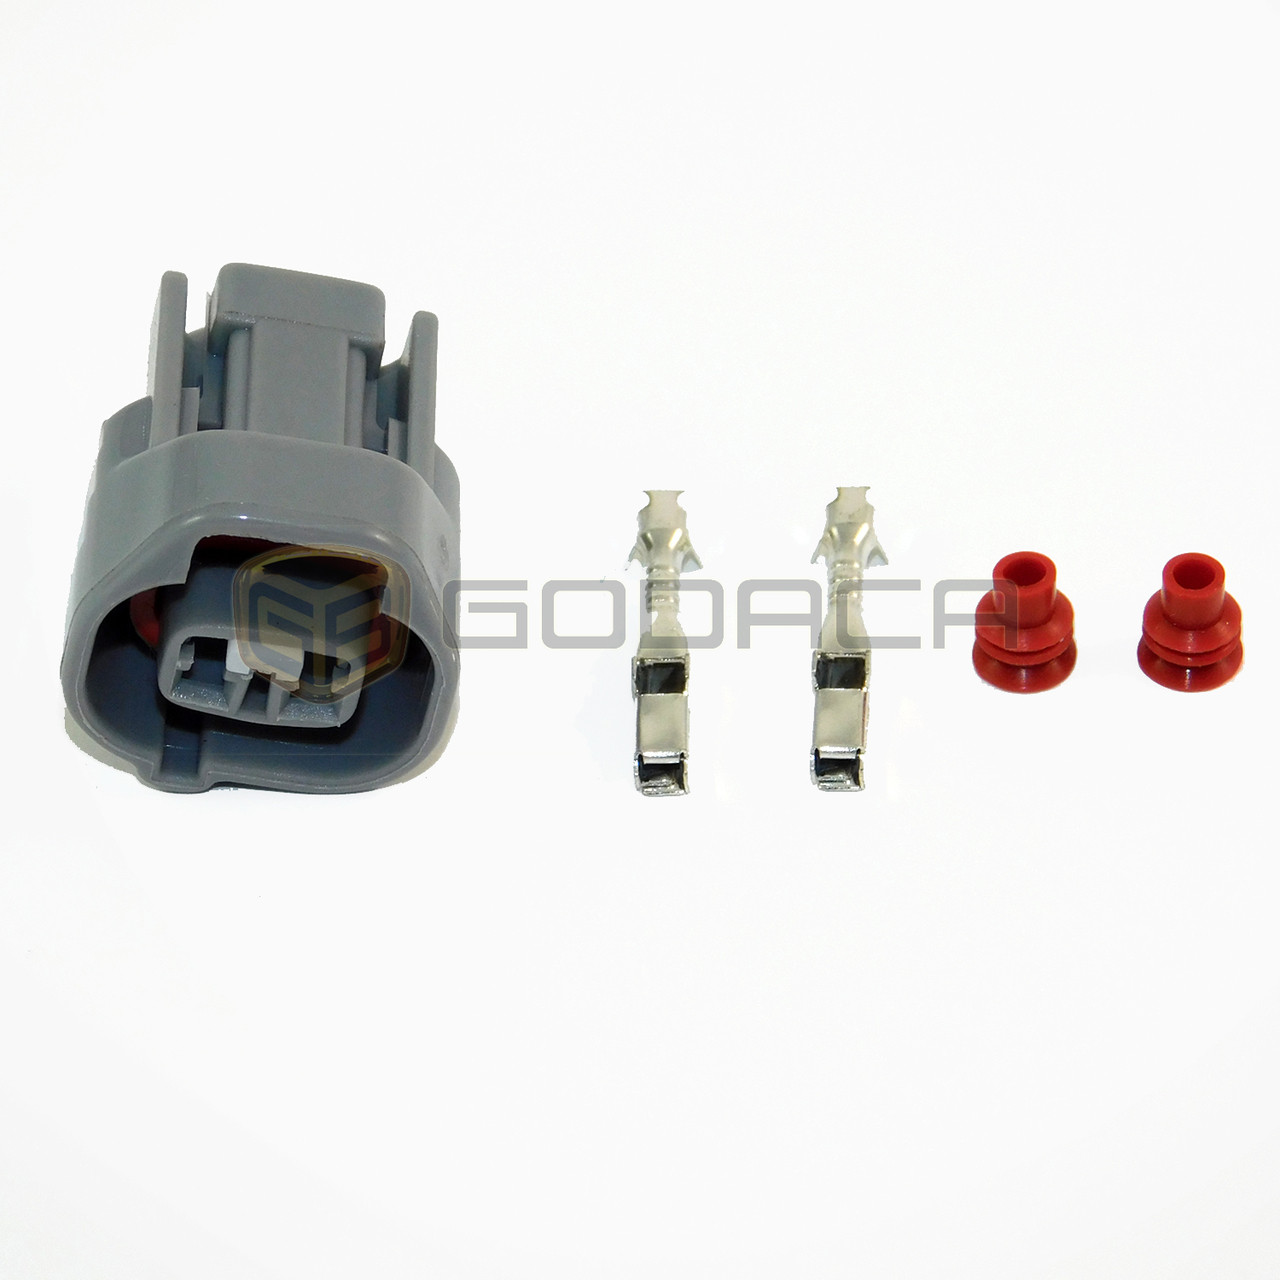 1x2 pin connector for toyota lexus sensor 90980 11156 w out wire husqvarna wiring harness connectors 1x2 pin connector for toyota lexus sensor 90980 11156 w out wire